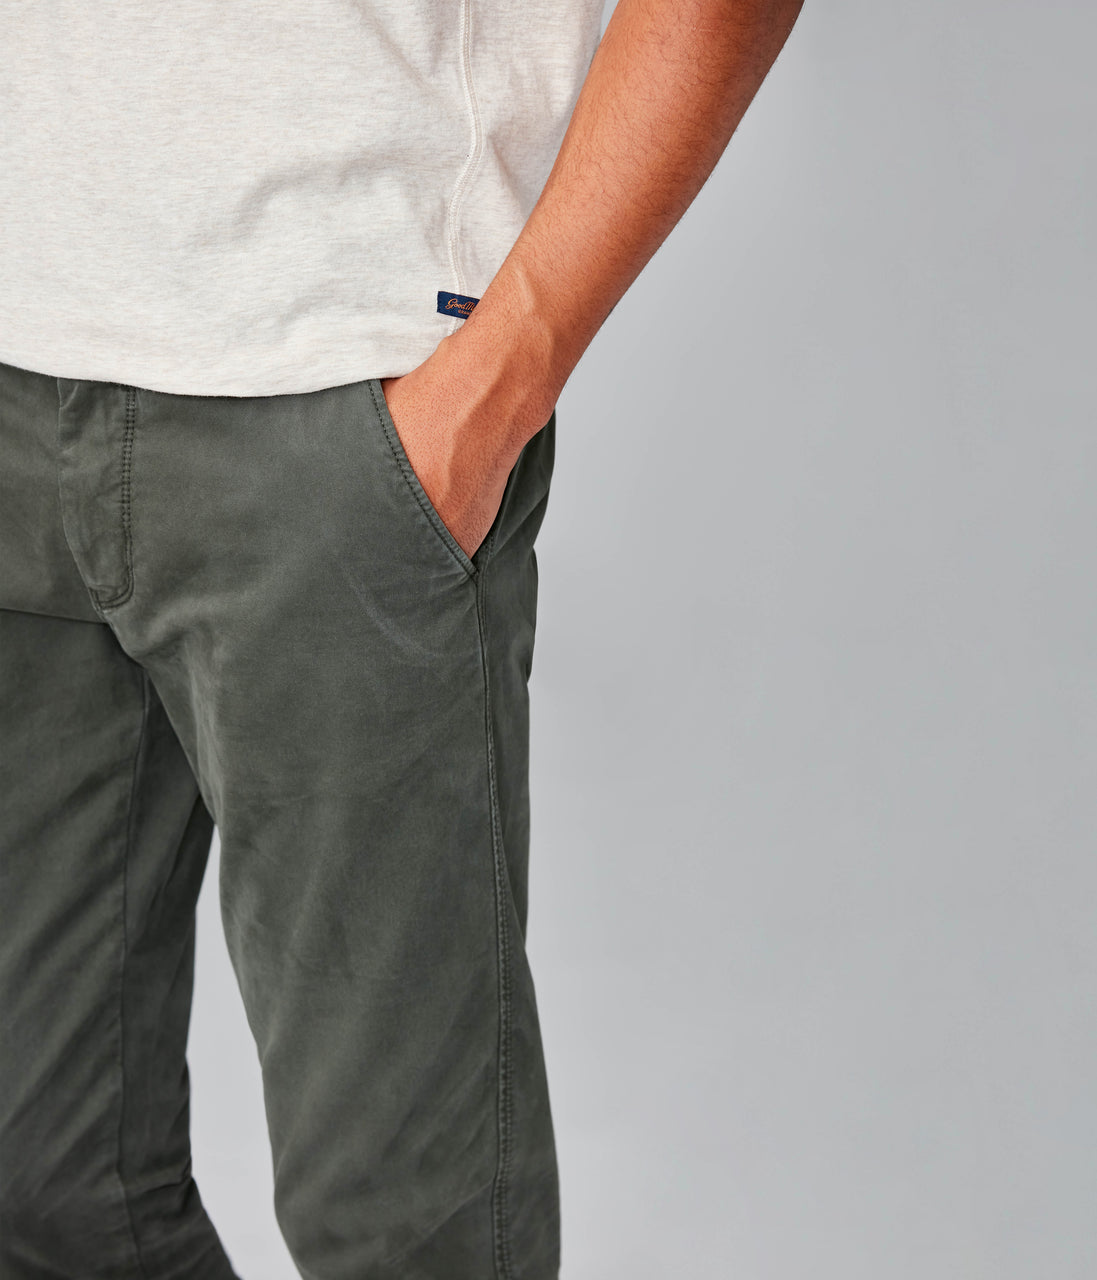 Star Chino in Pro Stretch Twill - Military Green - Good Man Brand - Star Chino in Pro Stretch Twill - Military Green